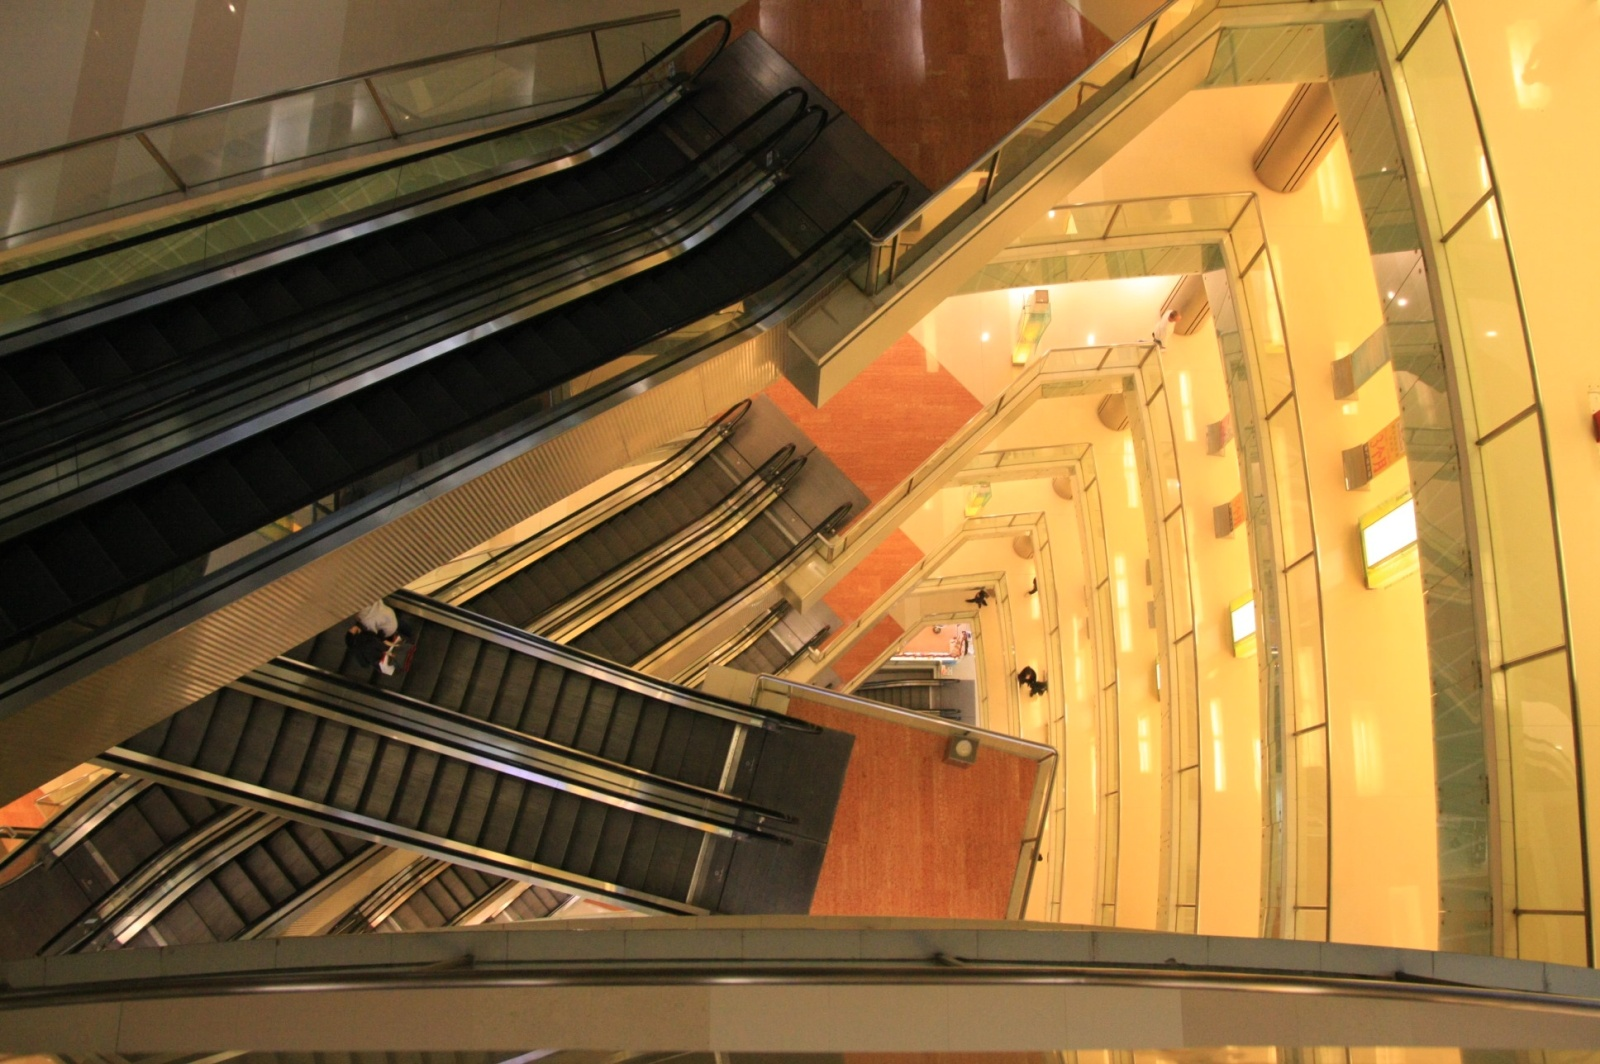 More huge shopping centers - China is cheaper than Hong Kong, so people make visas and come here